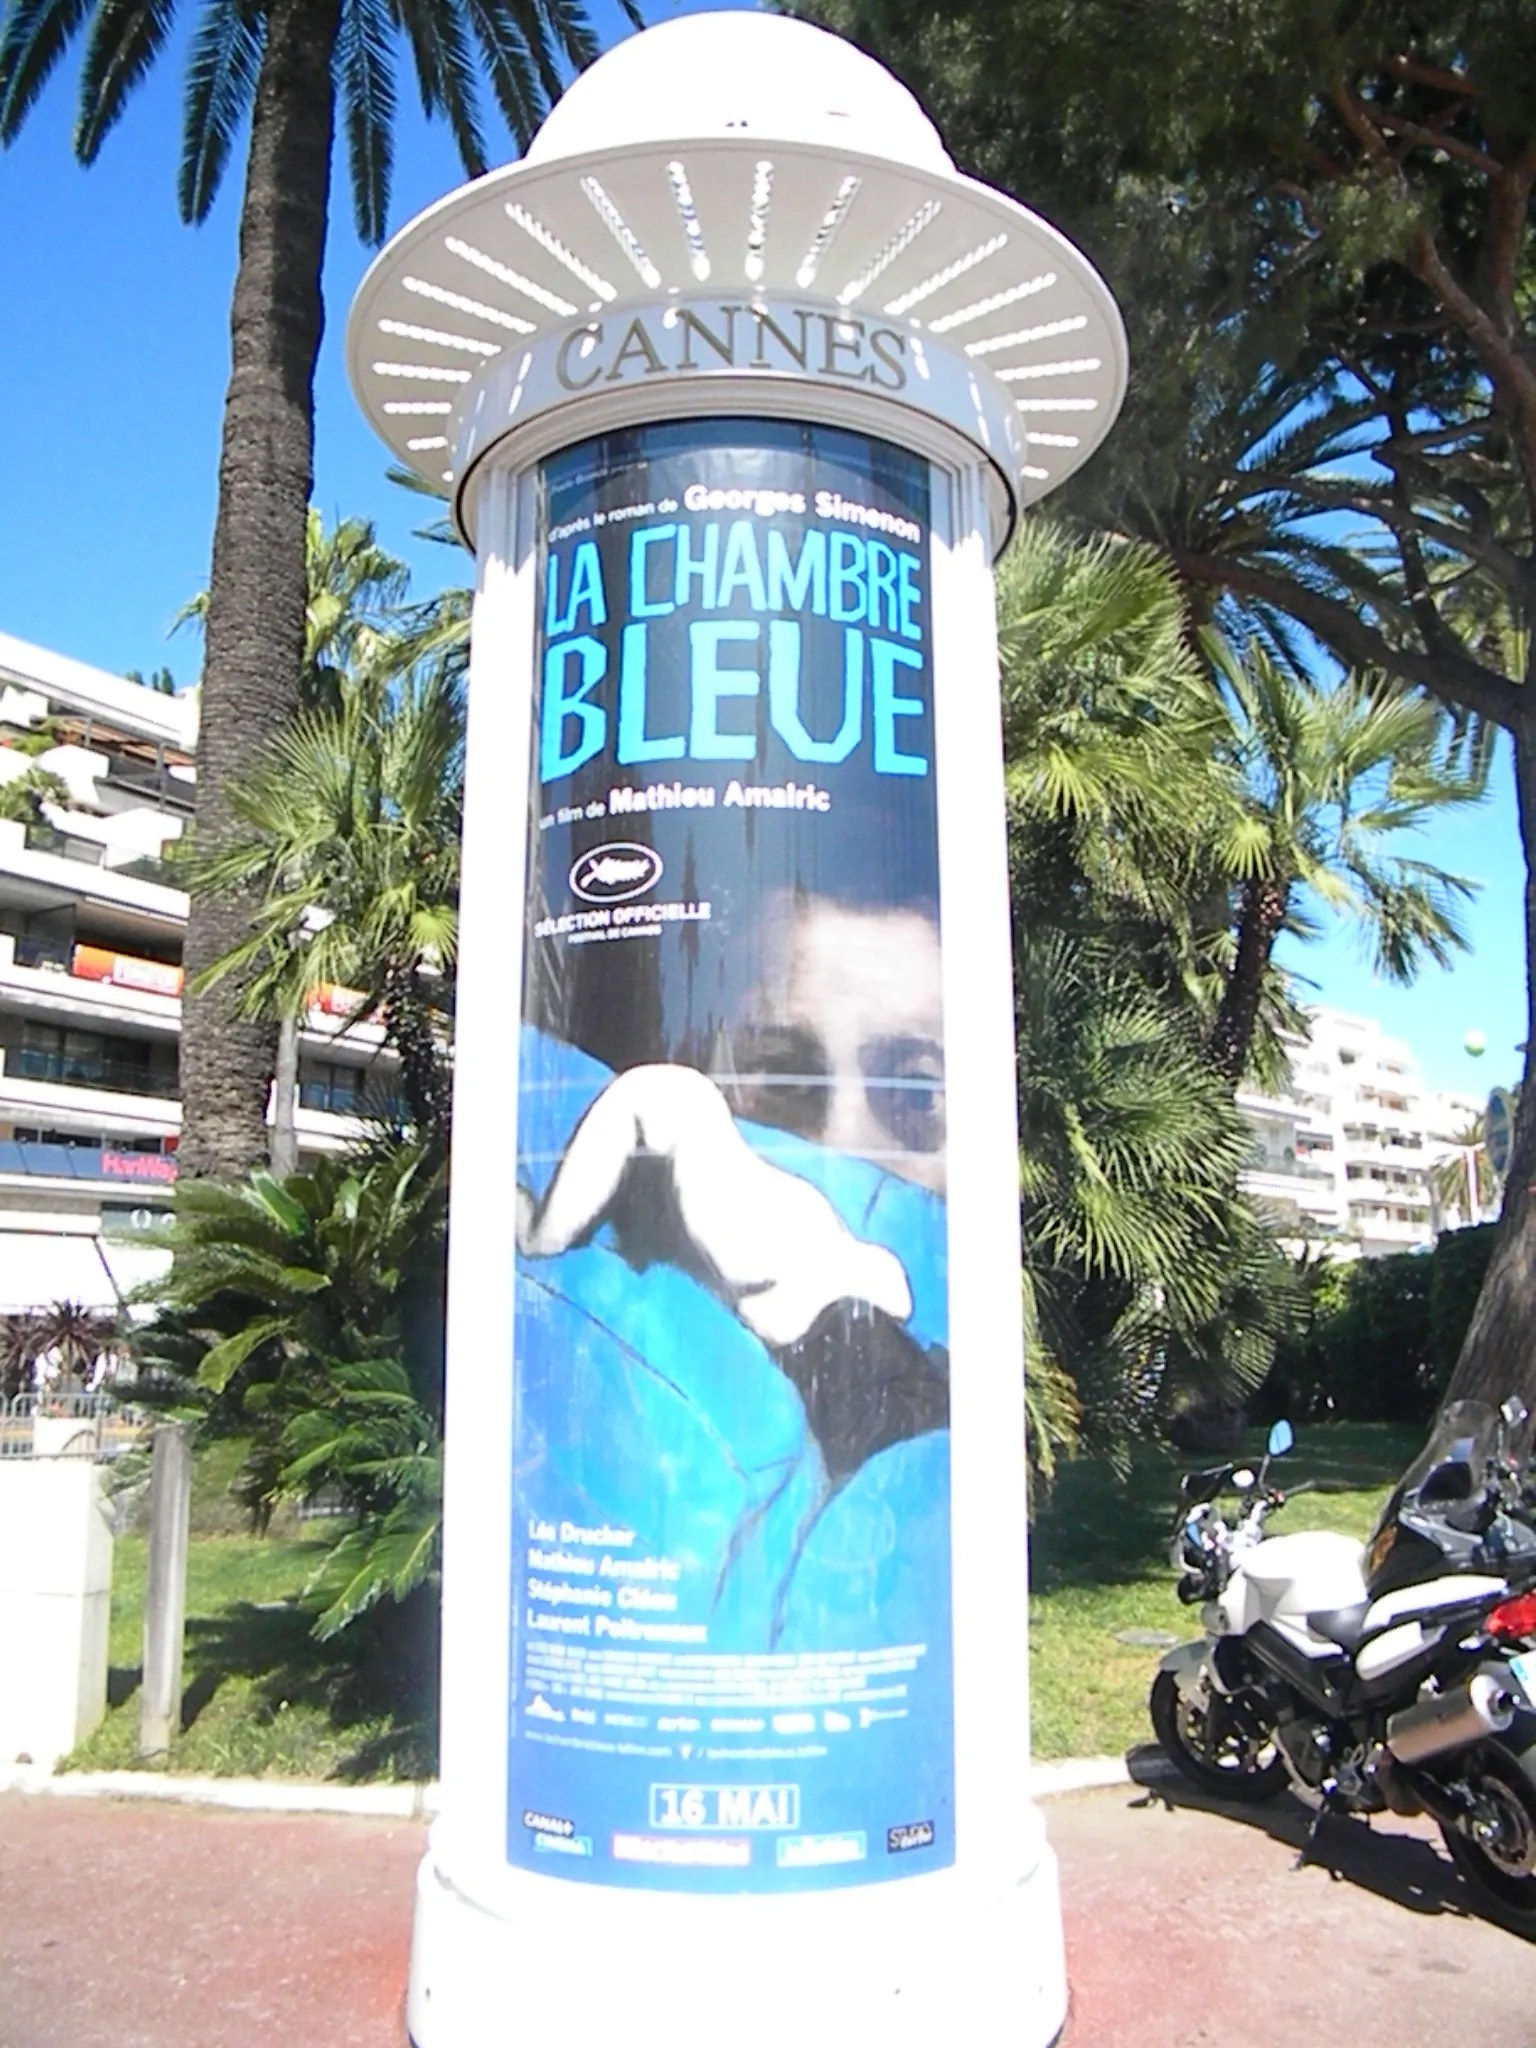 La Chambre Bleue Stream Cannes Posters Transformers 4 The Expendables 3 Poster